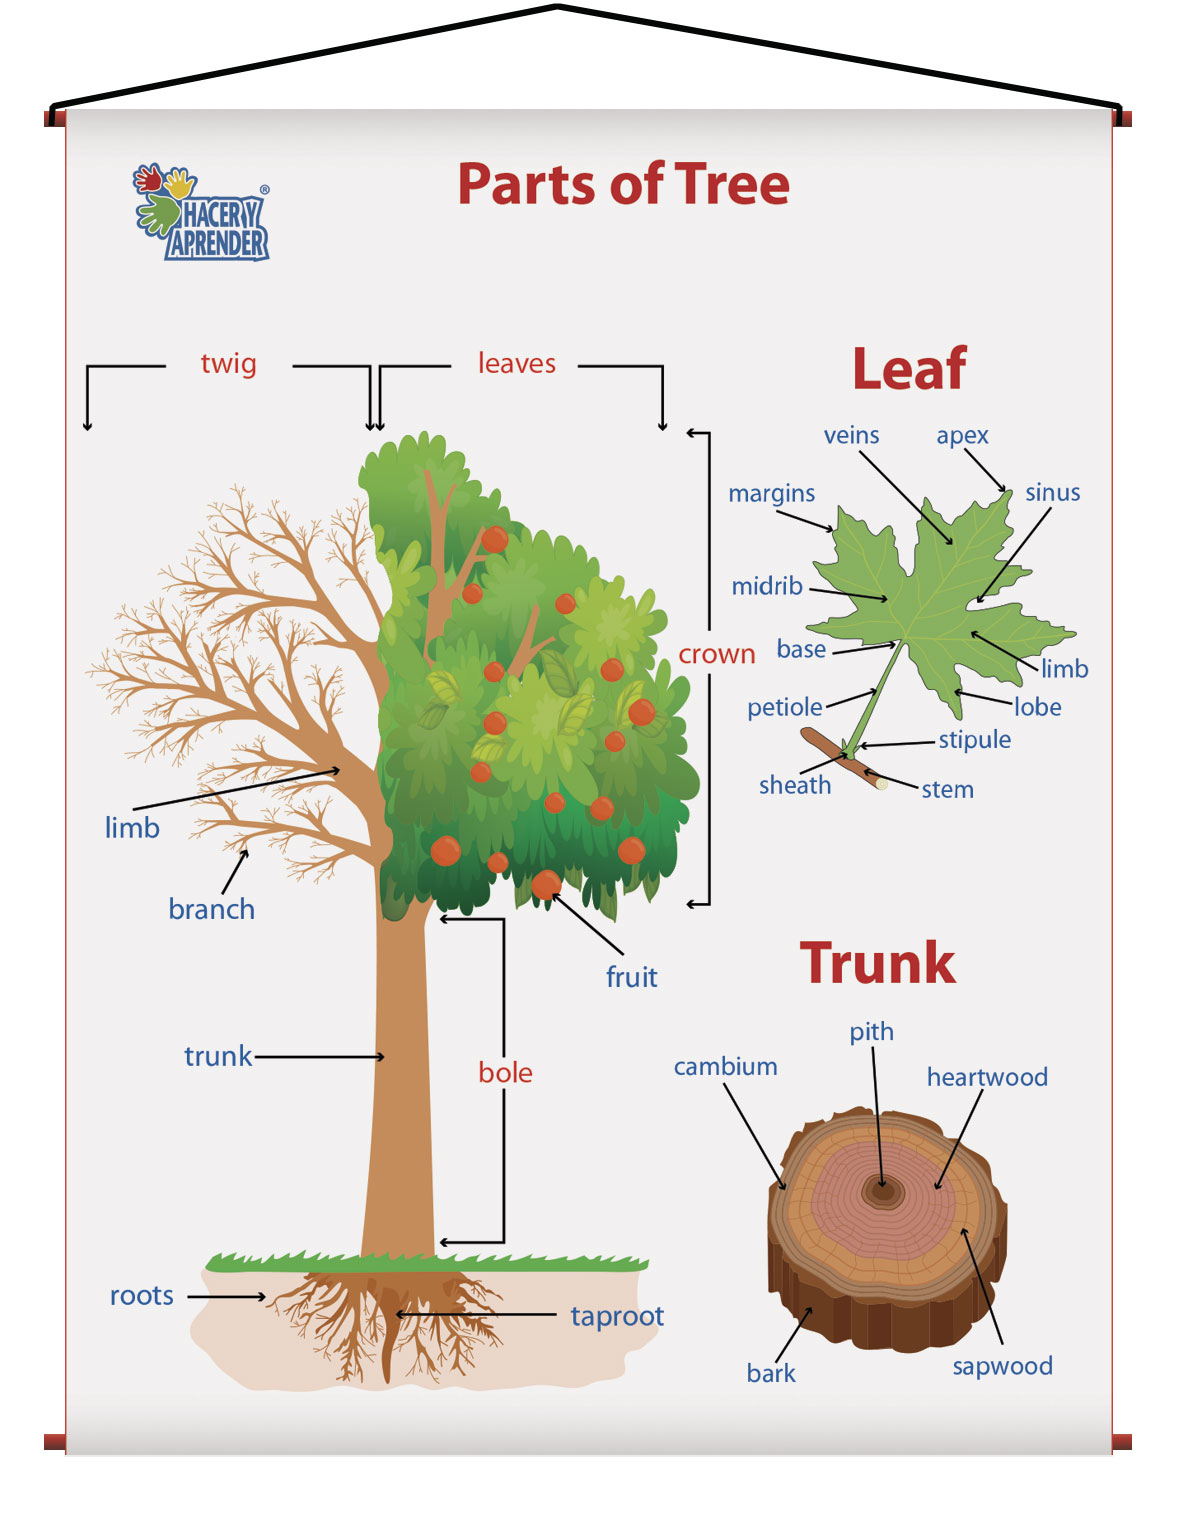 1729 PARTS OF THE TREE